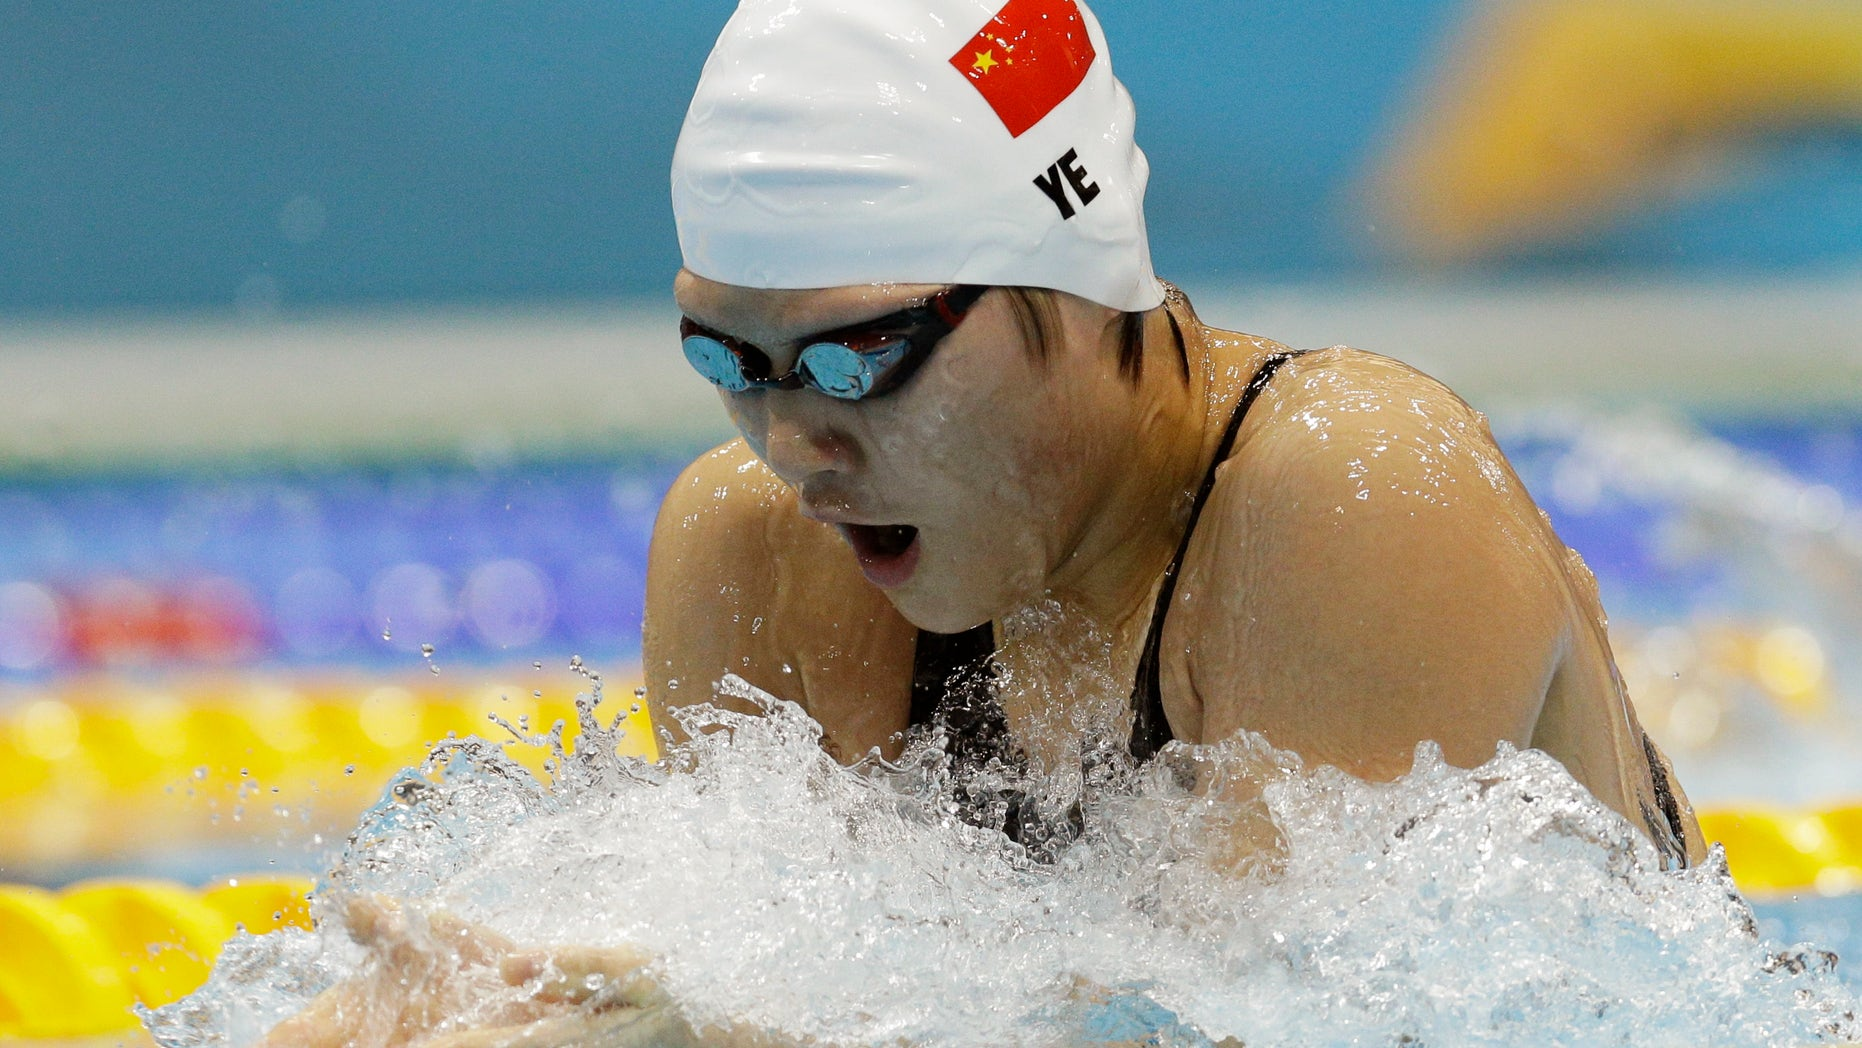 China's Ye Shiwen competes in a women's 200-meter individual medley swimming heat at the Aquatics Centre in the Olympic Park during the 2012 Summer Olympics in London, Monday, July 30, 2012. (AP Photo/Michael Sohn)